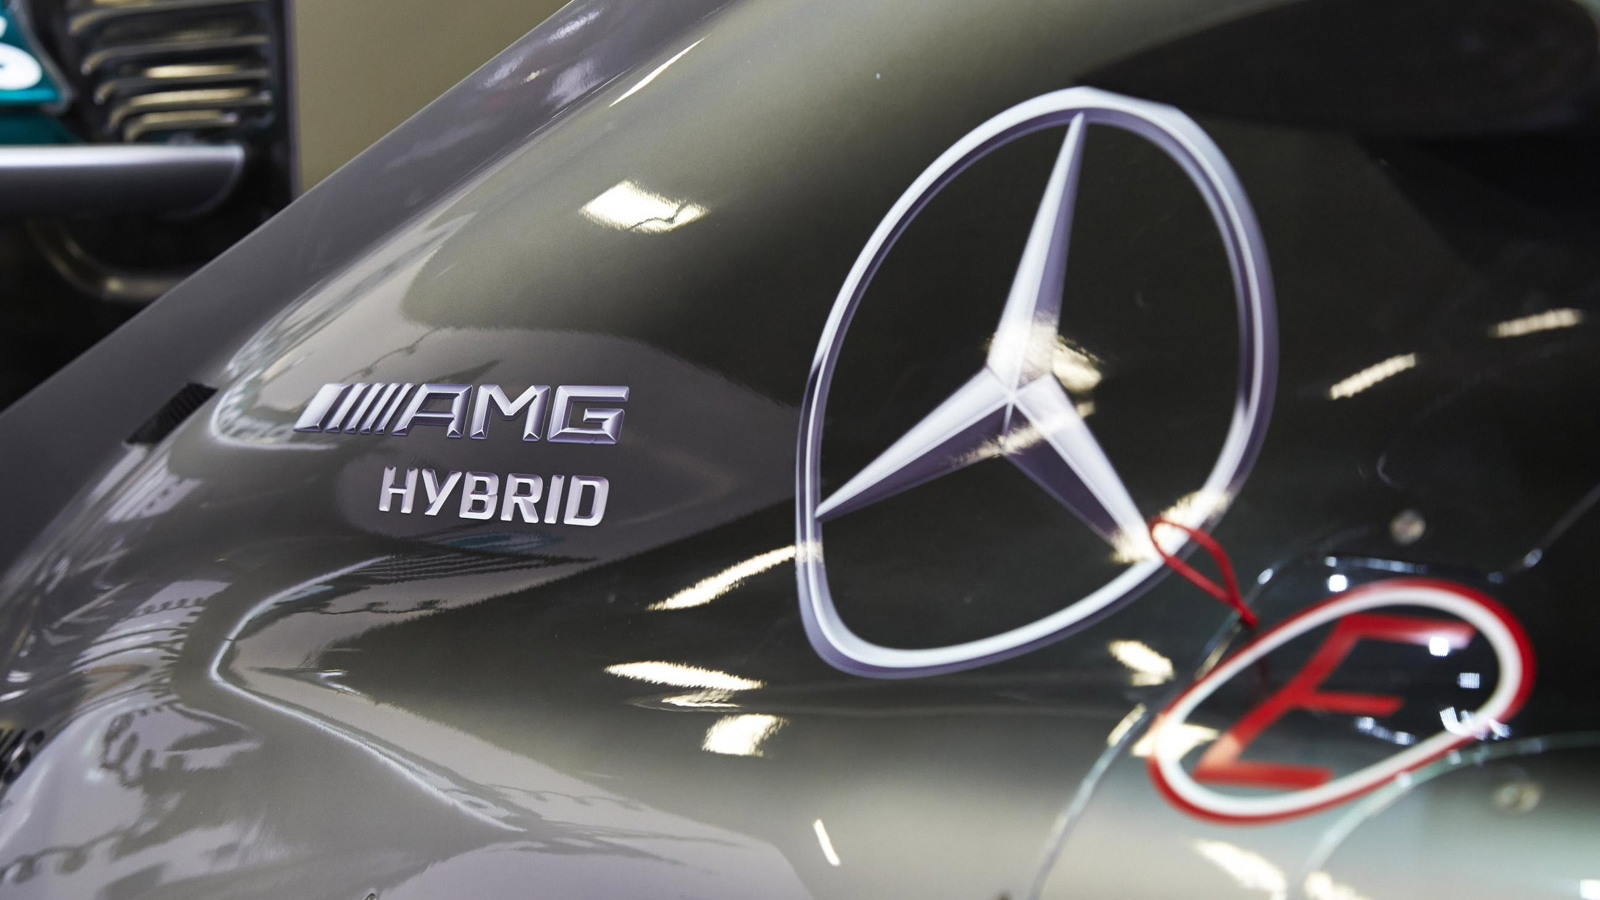 Mercedes AMG's W05 Hybrid 2014 Formula One car